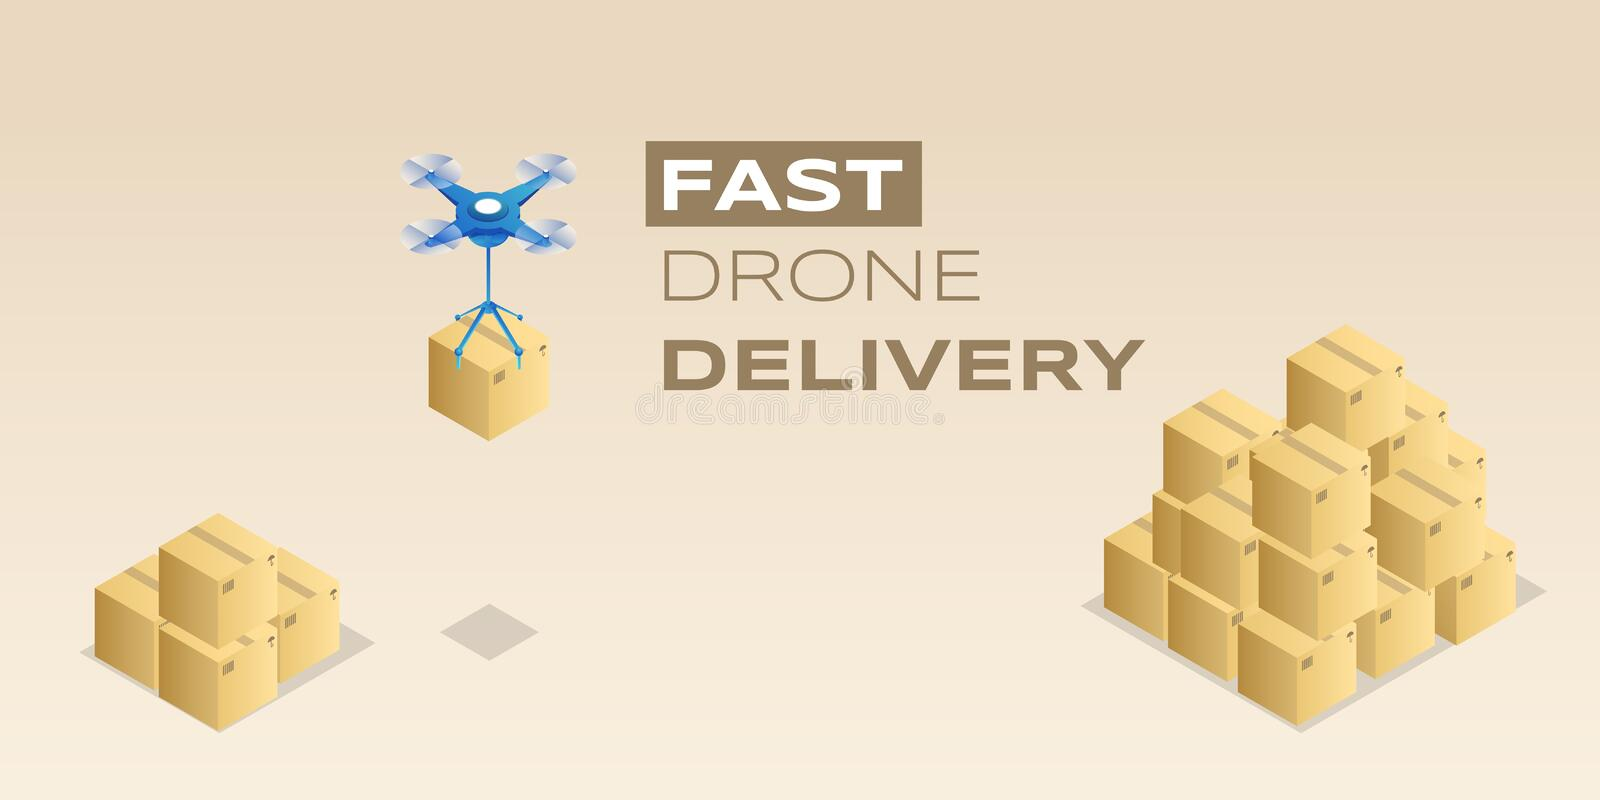 Fast drone delivery vector banner template. Contemporary package distribution service, parcel delivering business poster vector illustration